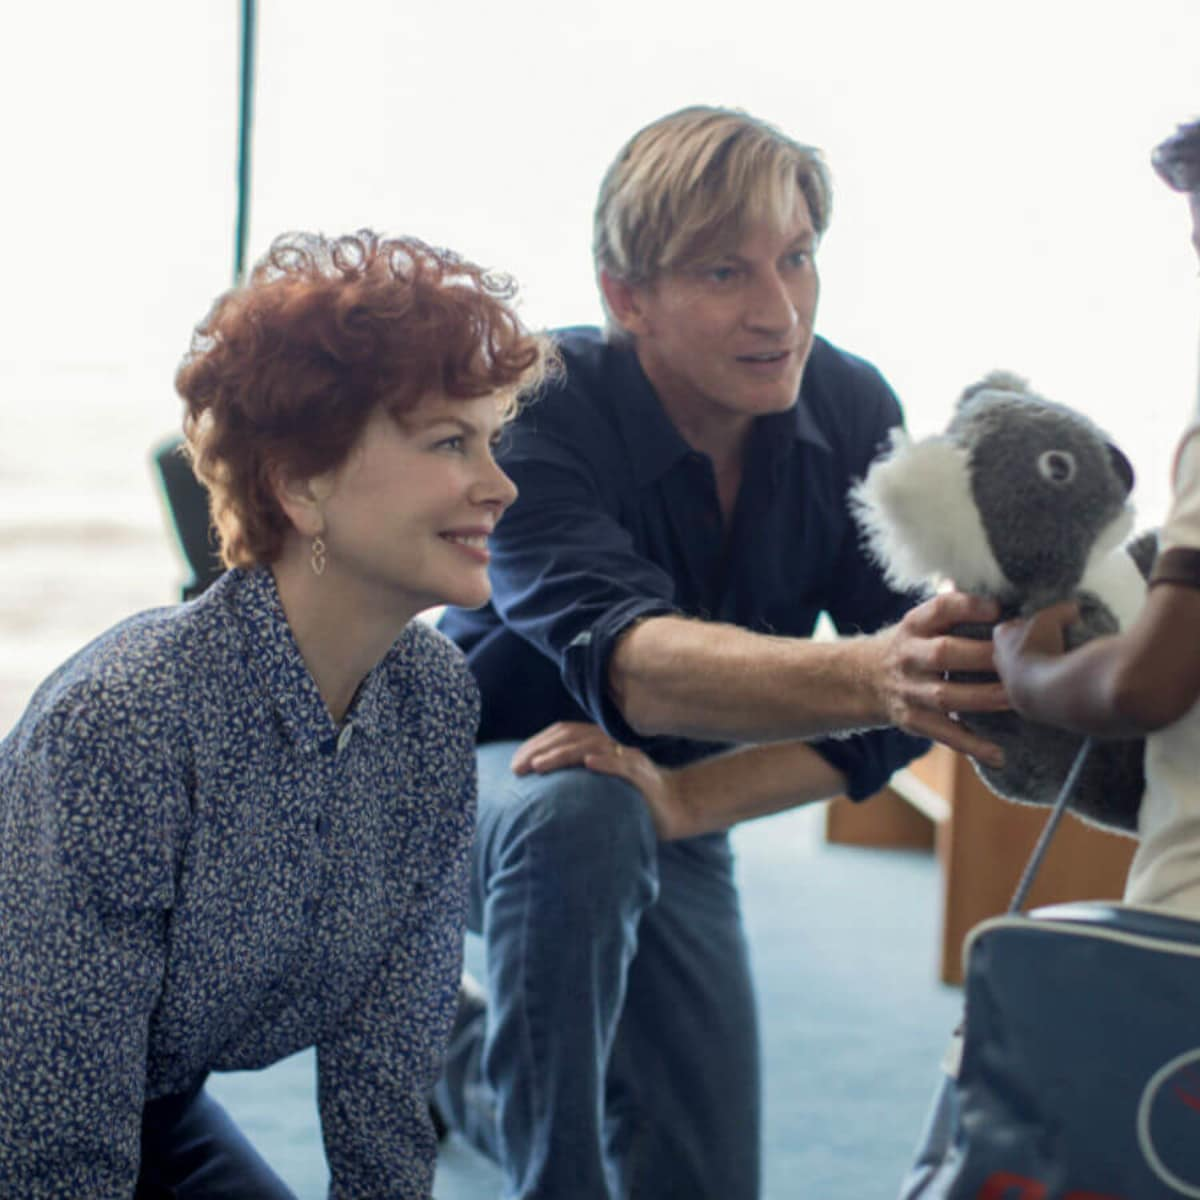 Nicole Kidman, David Wenham, and Sunny Pawar in Lion